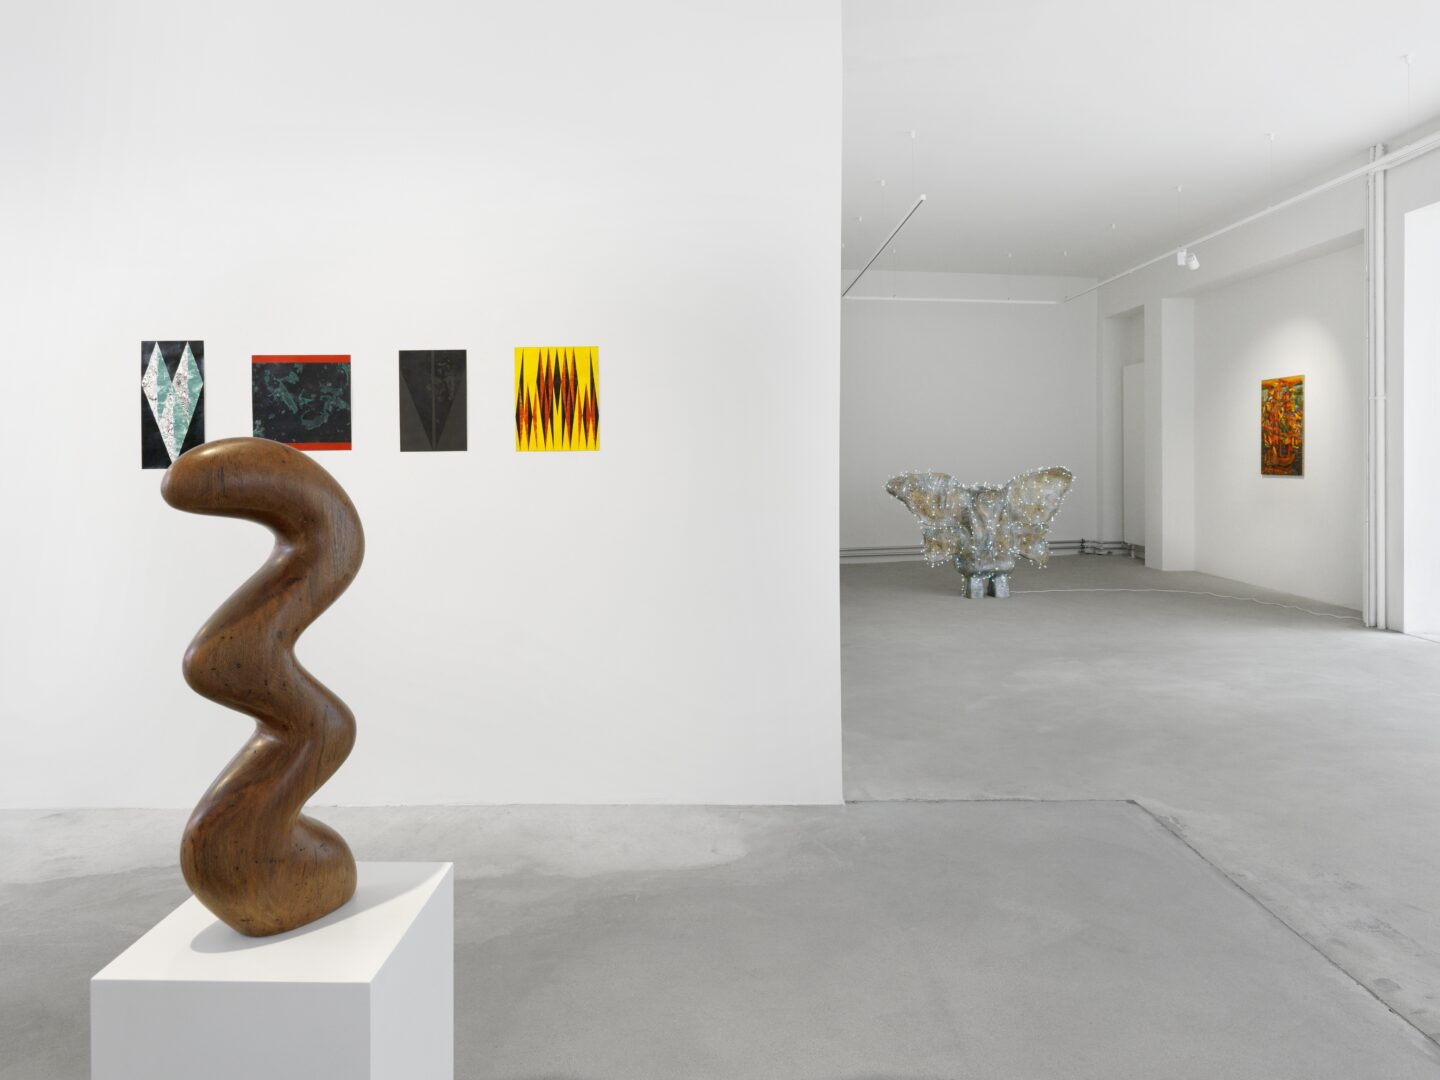 Exhibition View Groupshow «Swiss Made, Chapter II; view on Claudia Comte, Boogy Snake, 2020, Damián Navarro, Fiscal Fenouil, 2020, Le doigt vert, 2020, Verveine, 2020 and Rita Formol, 2020, Denis Savary, Lullaby, 2018 and Mathis Gasser, Flaggenschiff, 2009-2010» at Ribordy Thetaz, Geneva, 2020 / Photo: Annik Wetter / Courtesy: the artists and Ribordy Thetaz